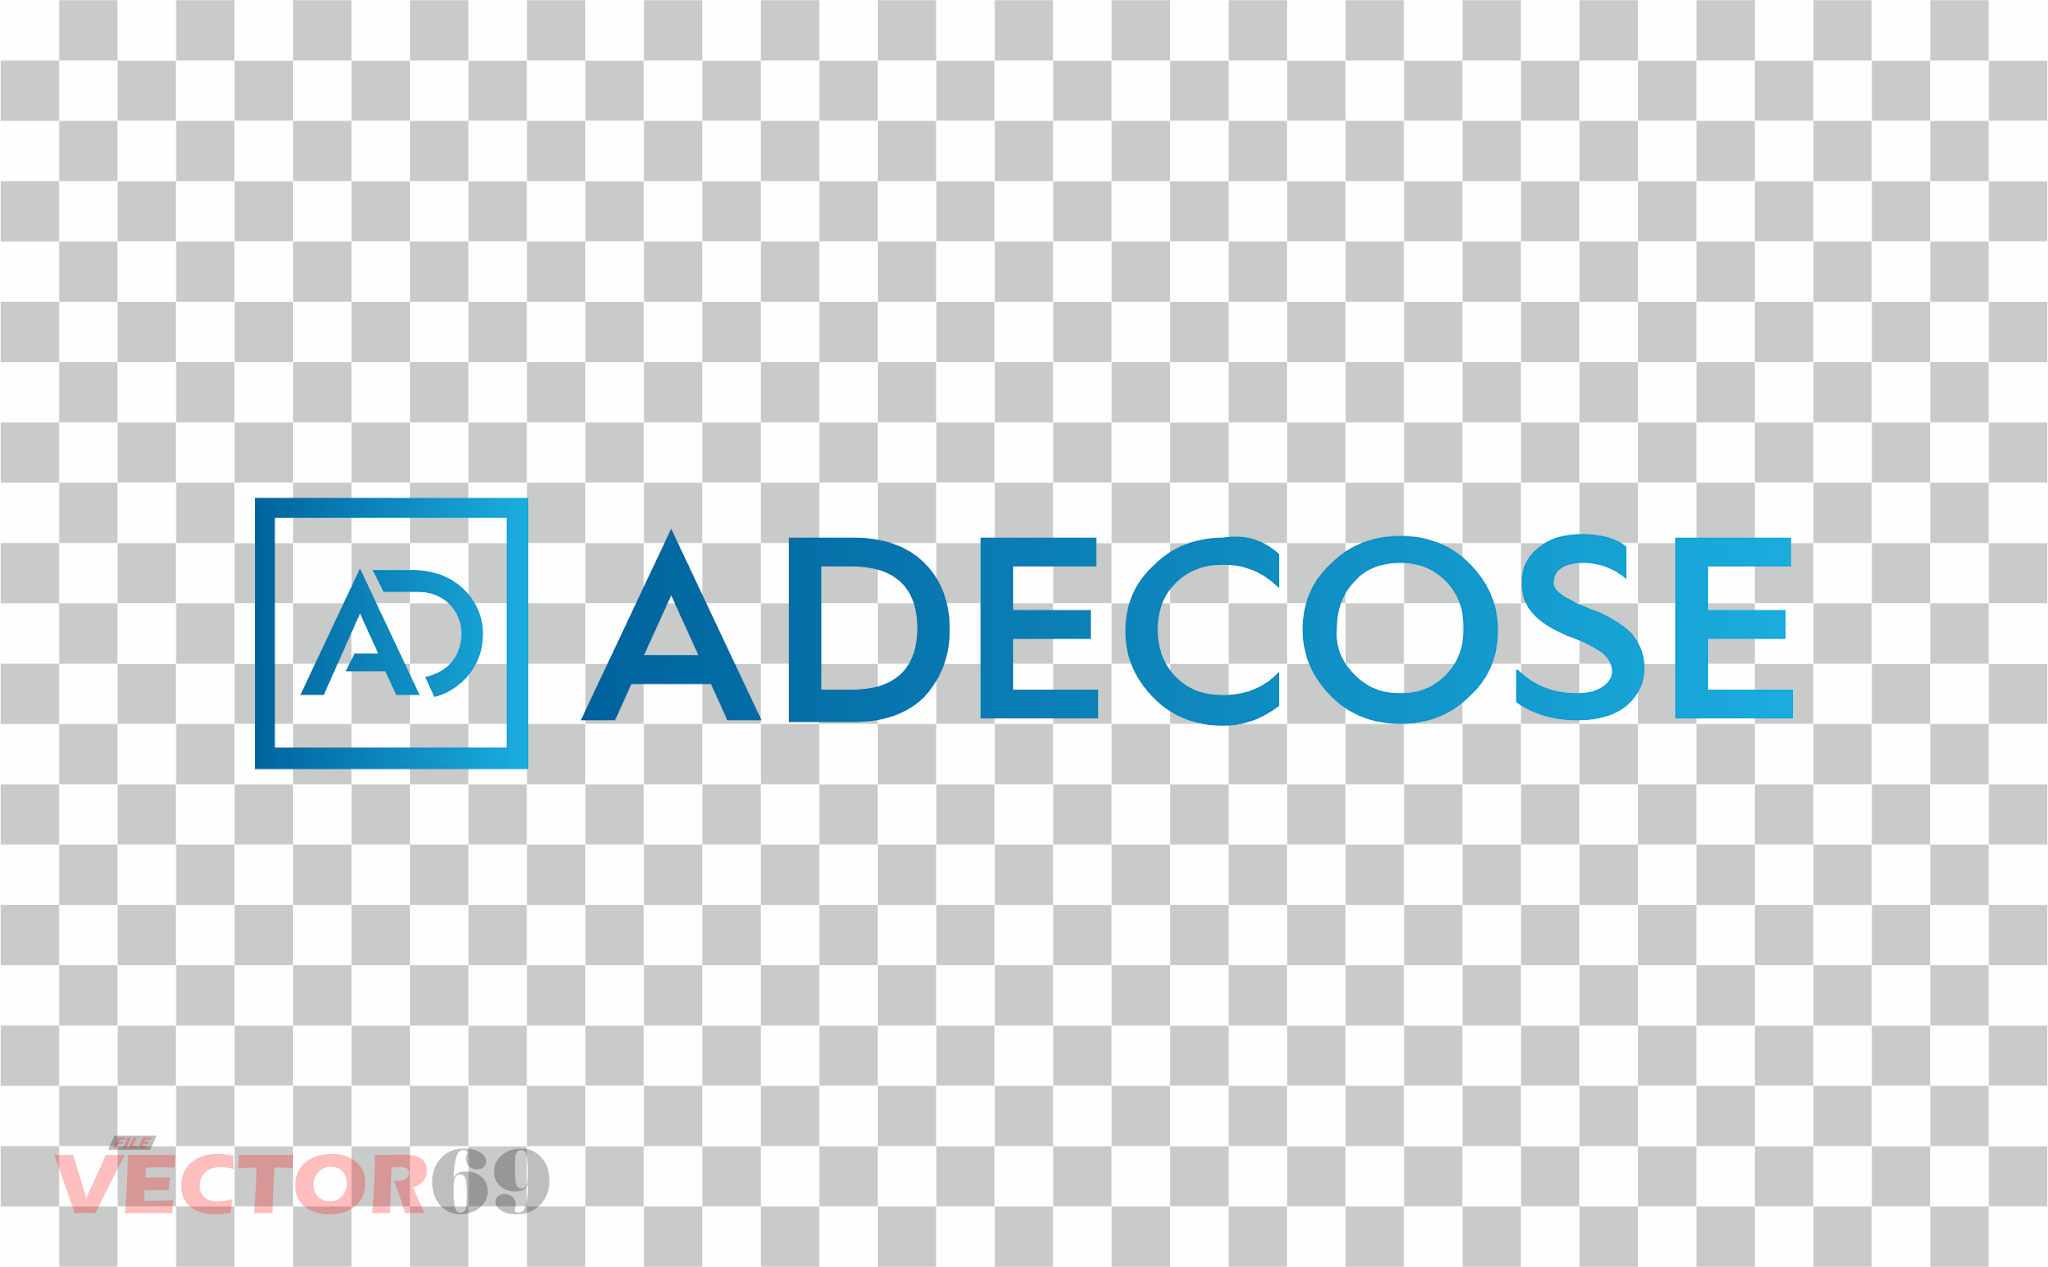 Adecose (Spanish Association of Insurance and Reinsurance Brokers) Logo - Download Vector File PNG (Portable Network Graphics)